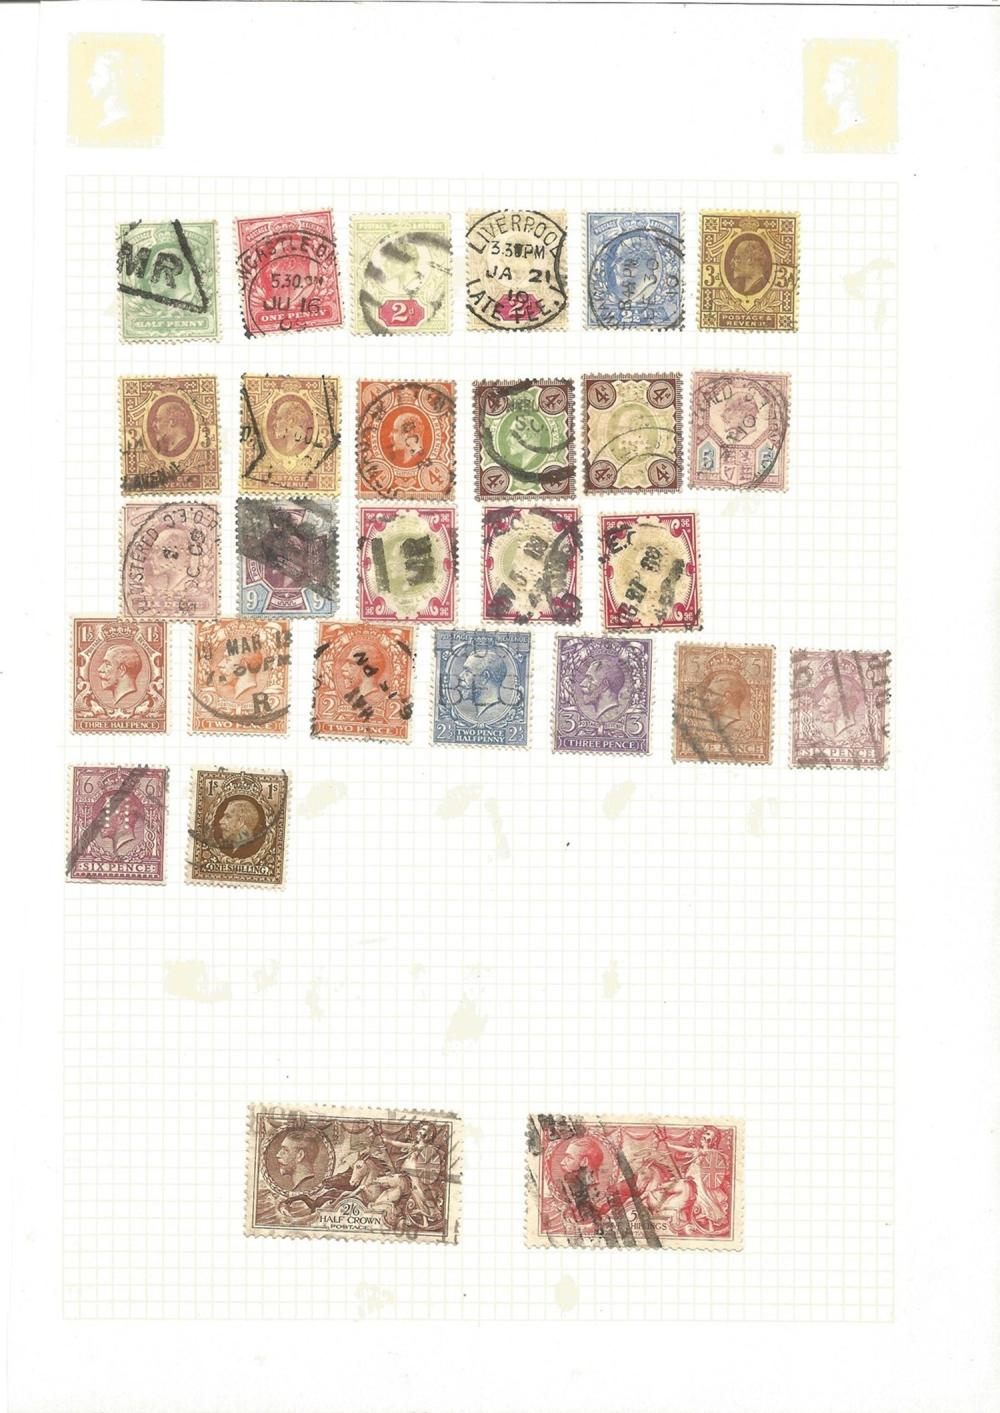 Great Britain, King Edward VII and George V, stamps on loose sheet, approx. 25. Good condition. We